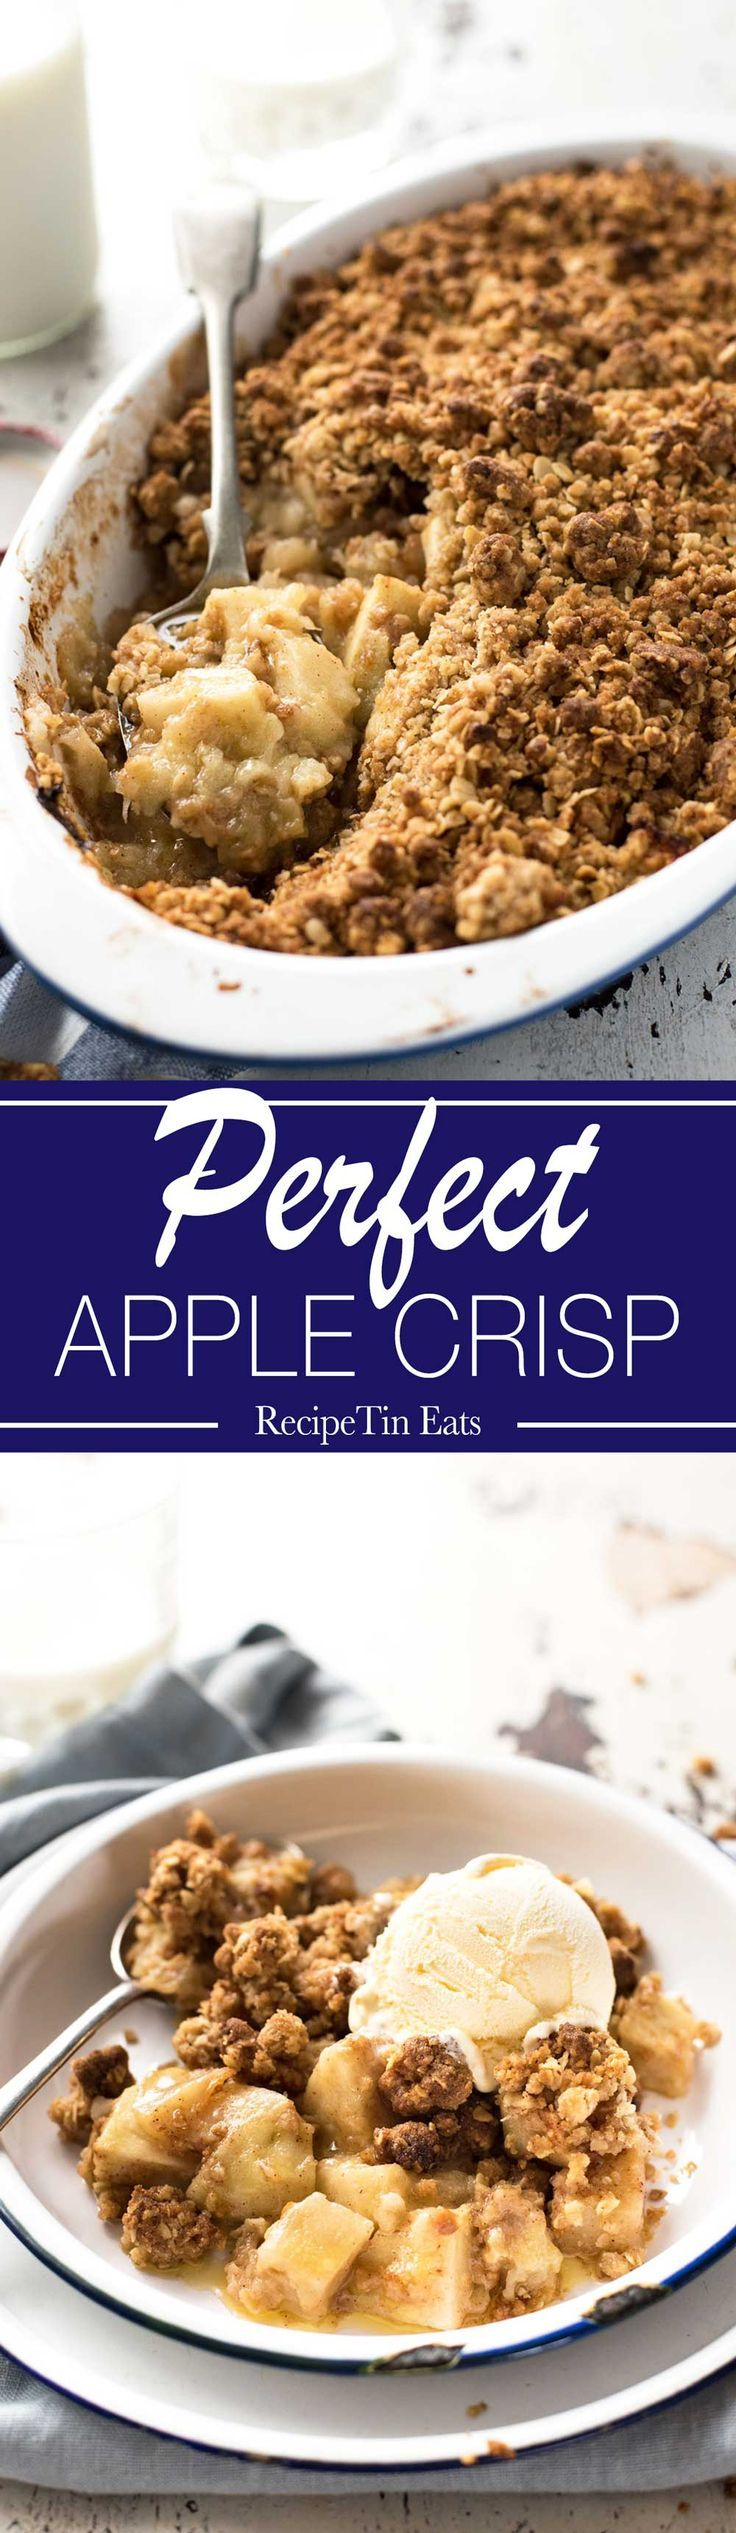 Apple Crisp (Apple Crumble)   FINALLY!!! A recipe with a topping that is ACTUALLY CRISP!!!